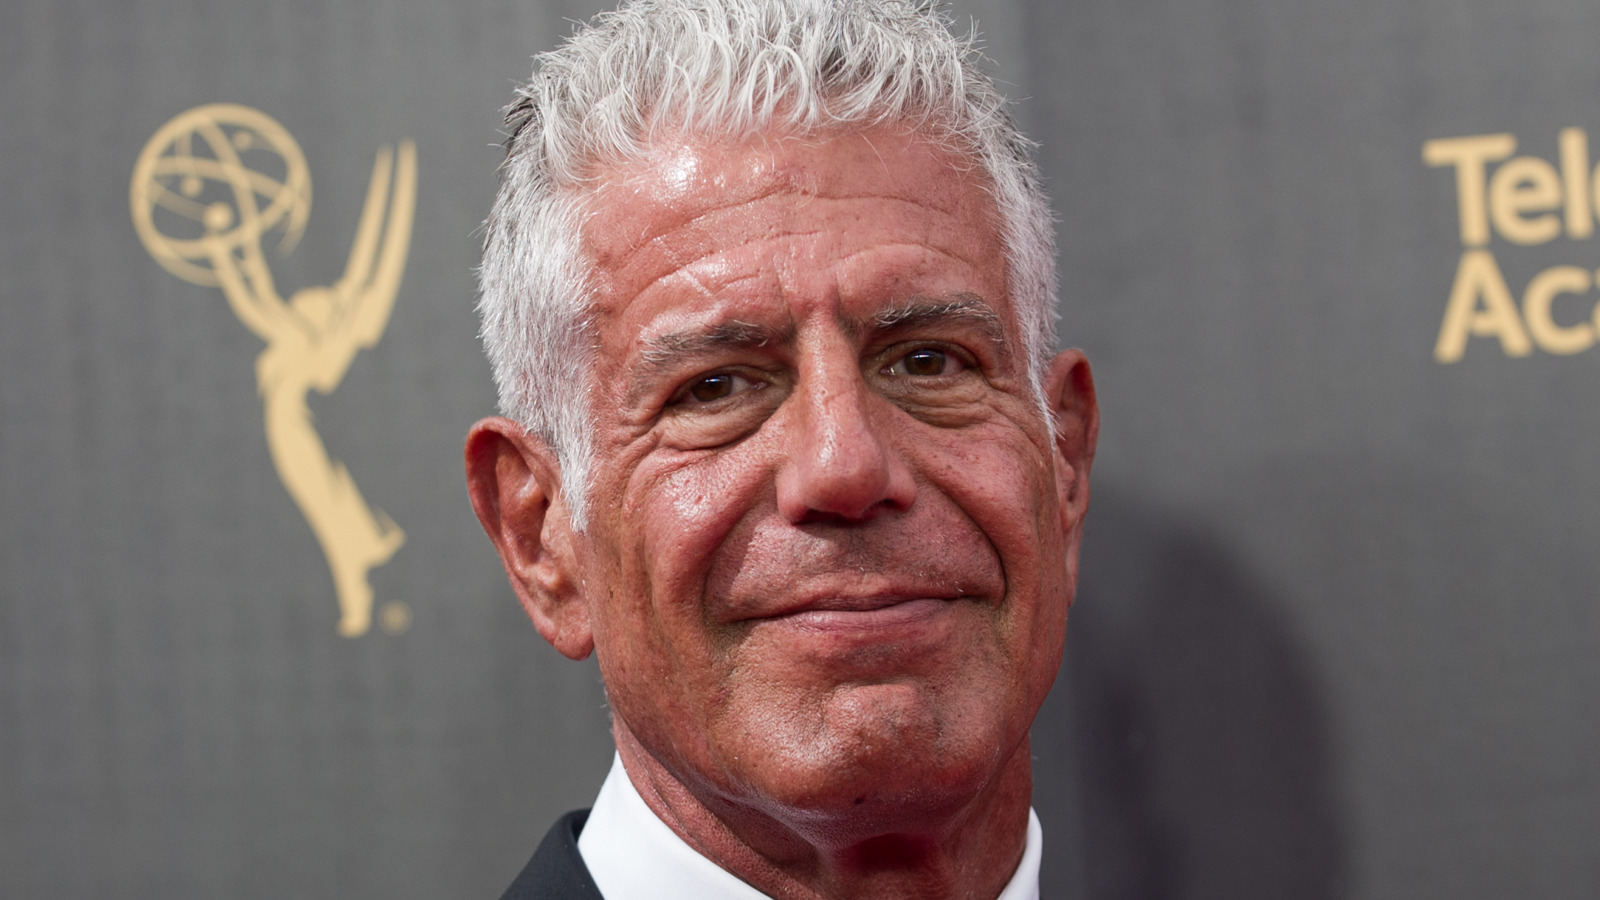 The Roadrunner Moment That Has Anthony Bourdain Fans Furious